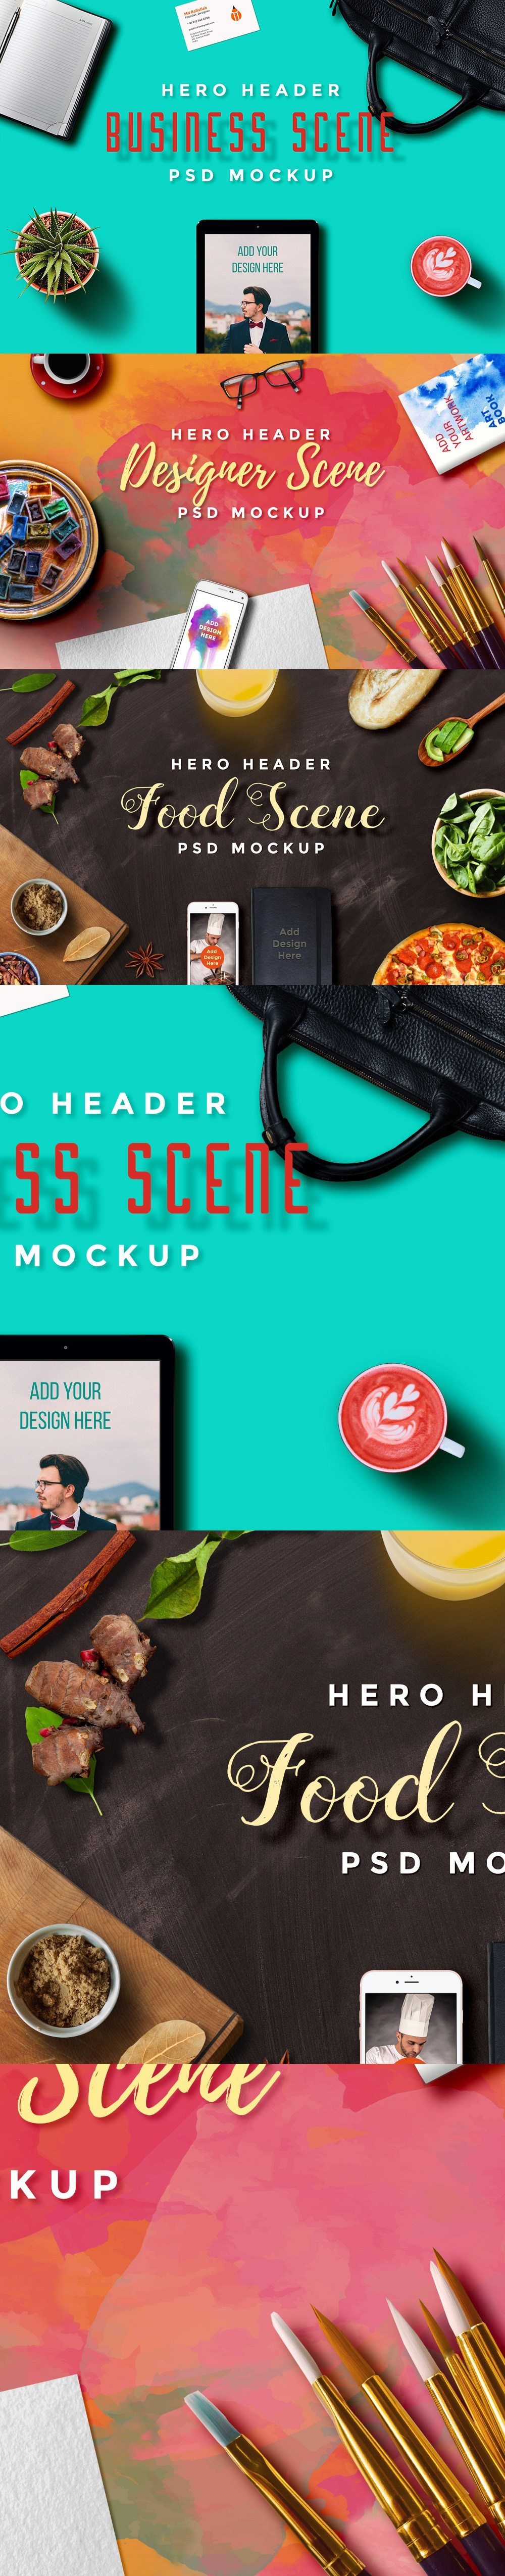 Hero-Header-Scene-Mockup-Templates